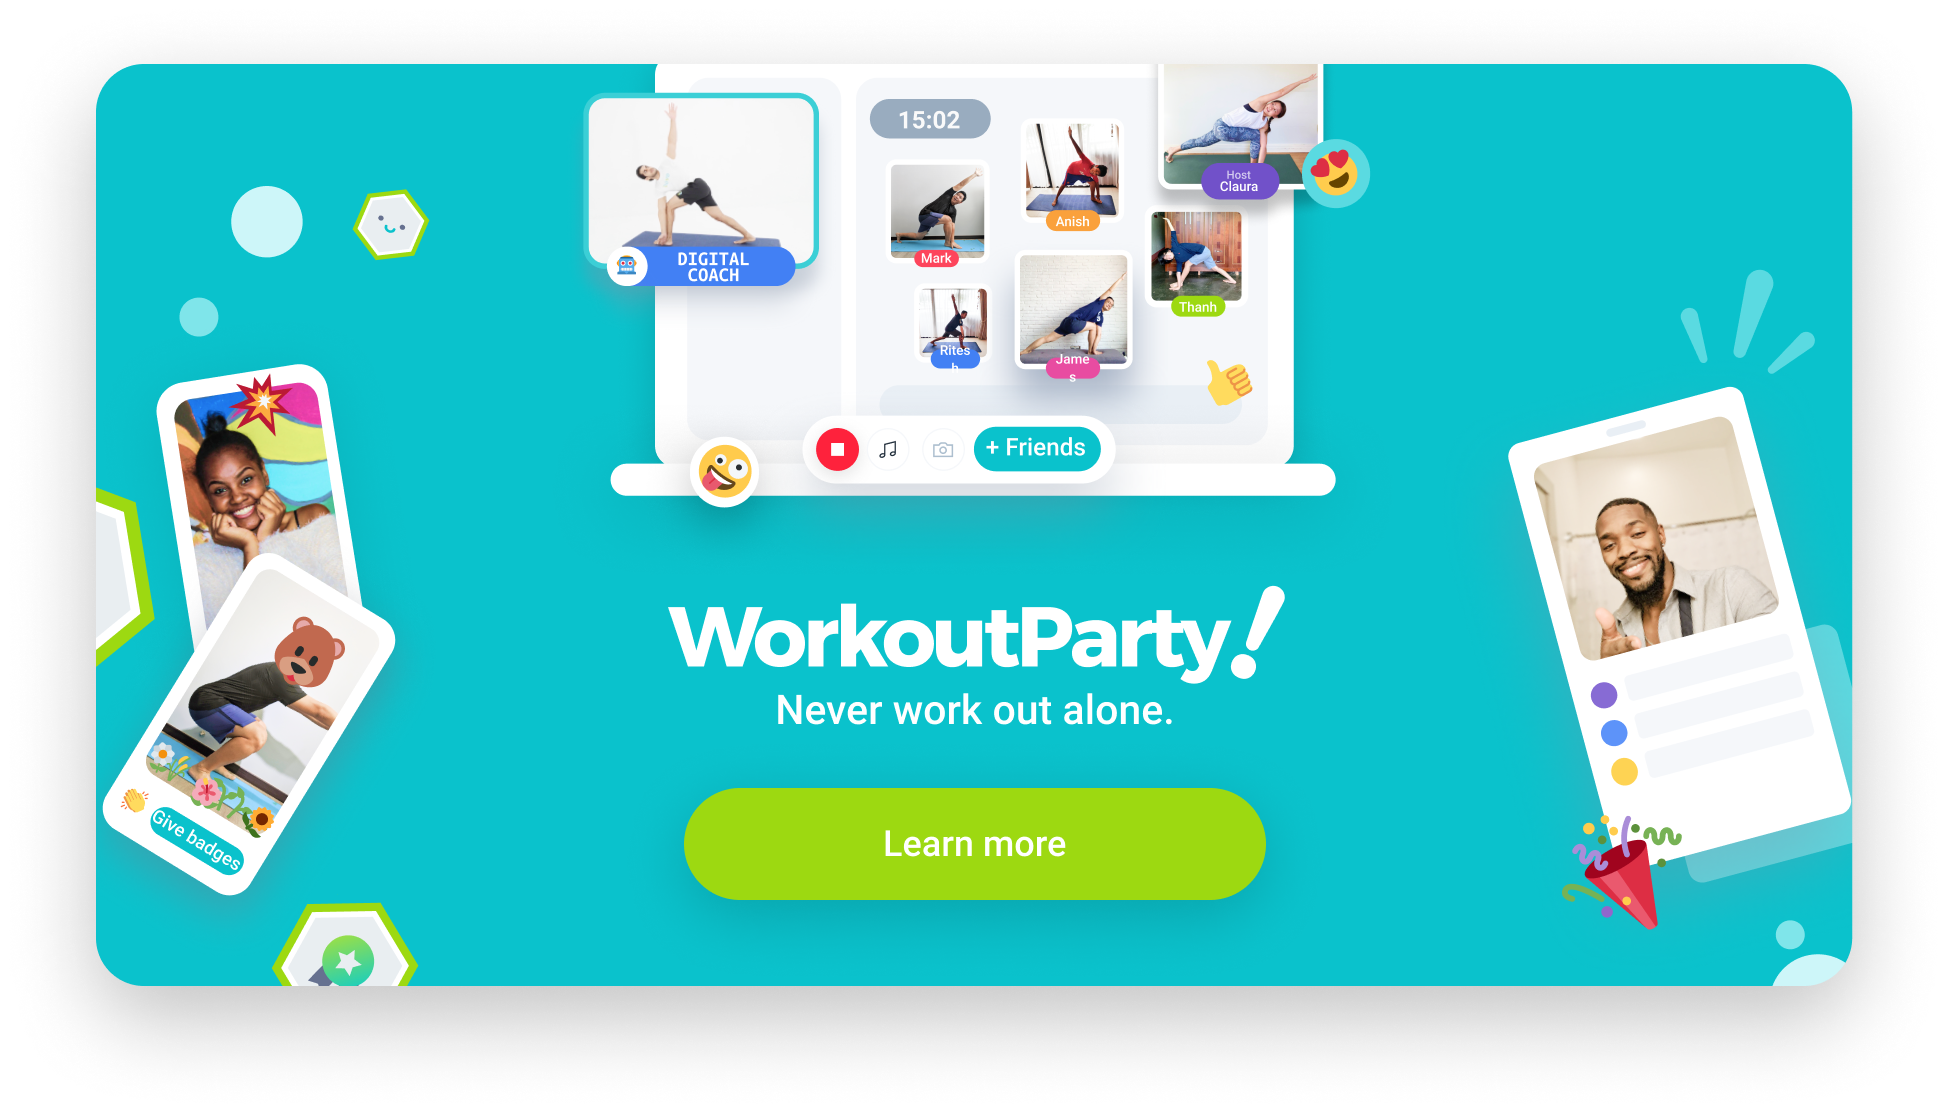 WorkoutParty! Workout anytime, anywhere